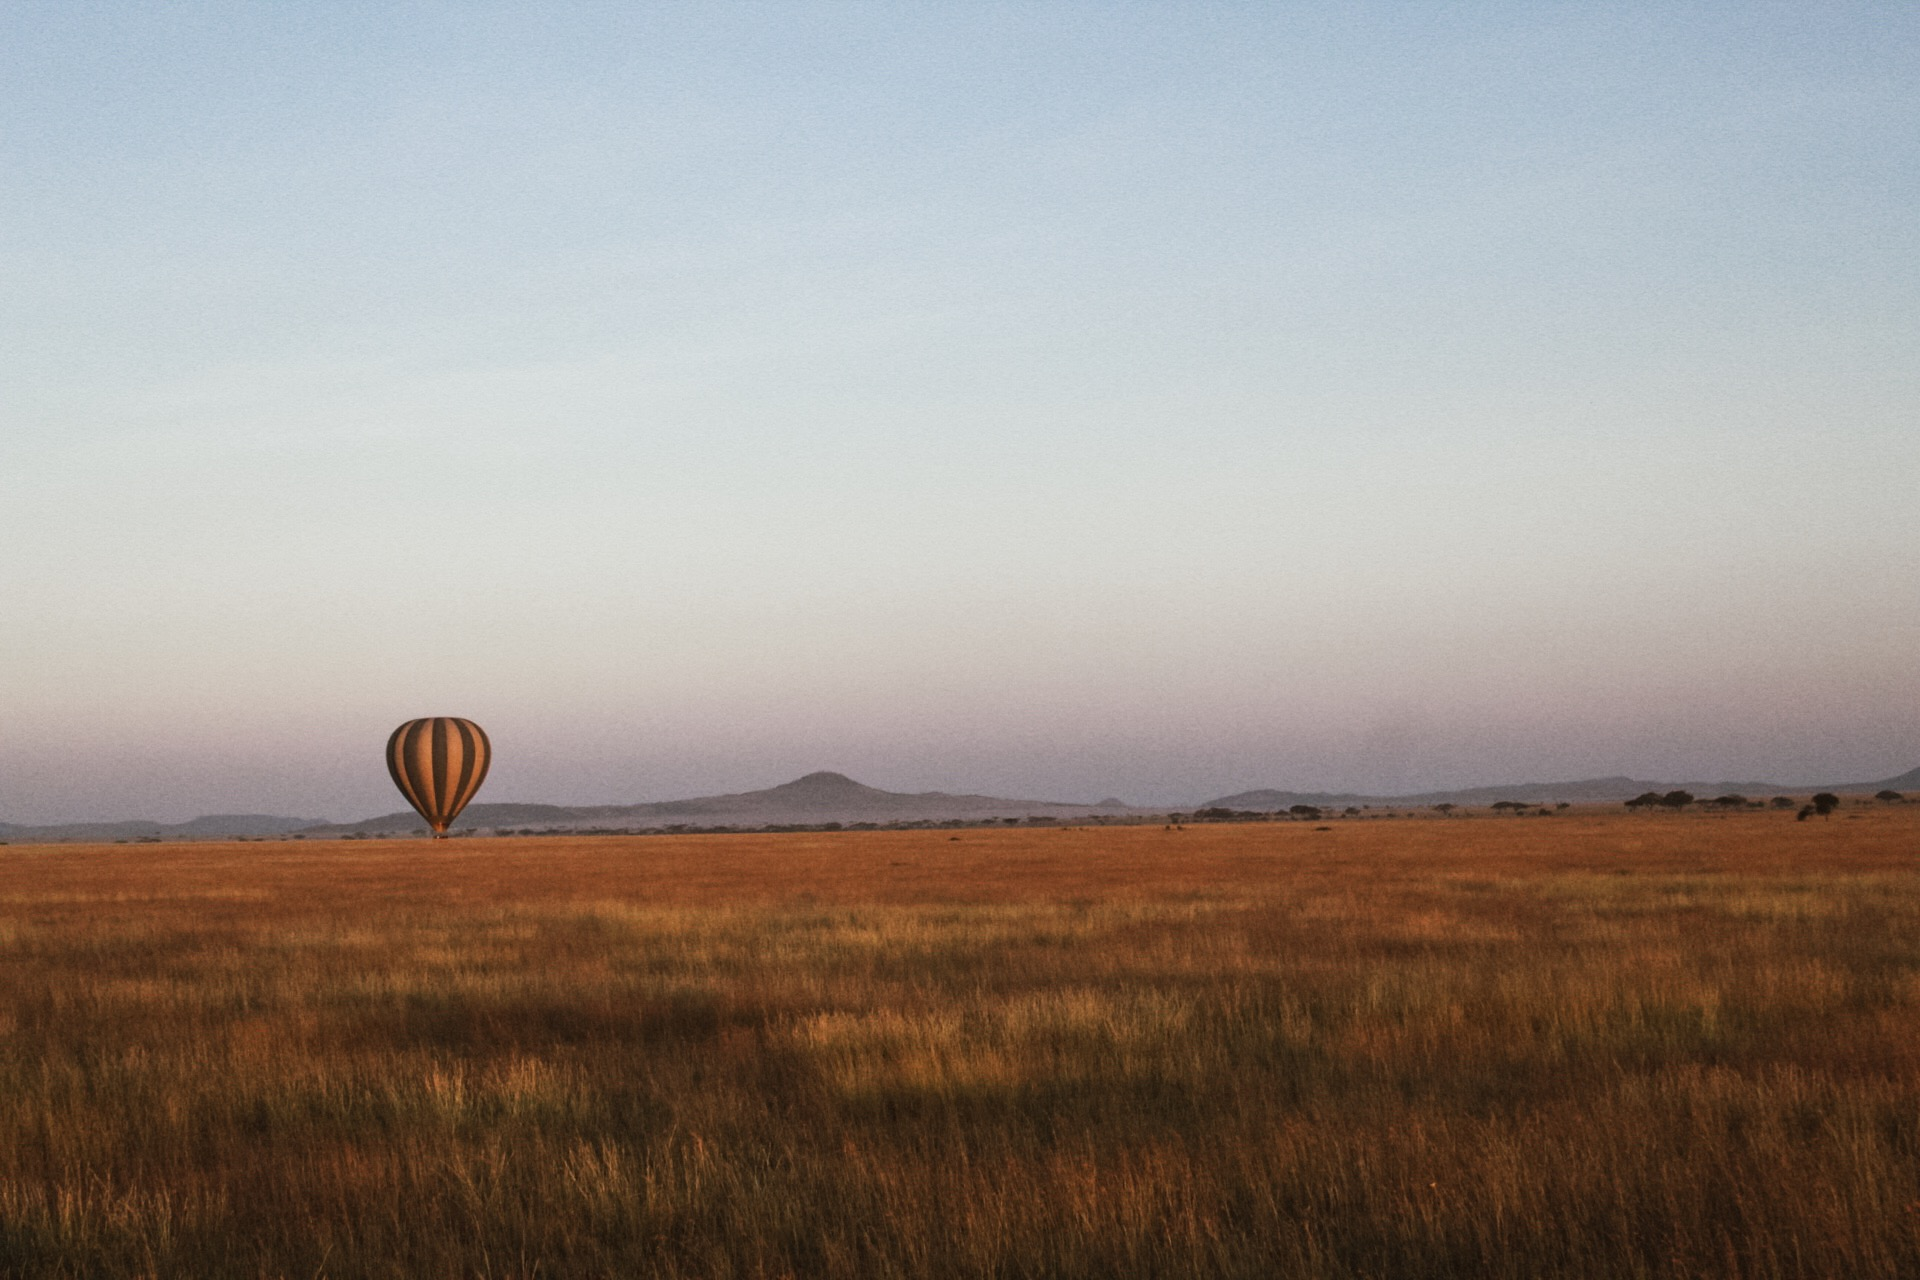 My first hot air balloon ride didn't disappoint. Sunrise over the Serengeti was truly magical, and the ride was followed by a champagne toast and a full English breakfast on the banks of a river under an acacia tree. Casual.